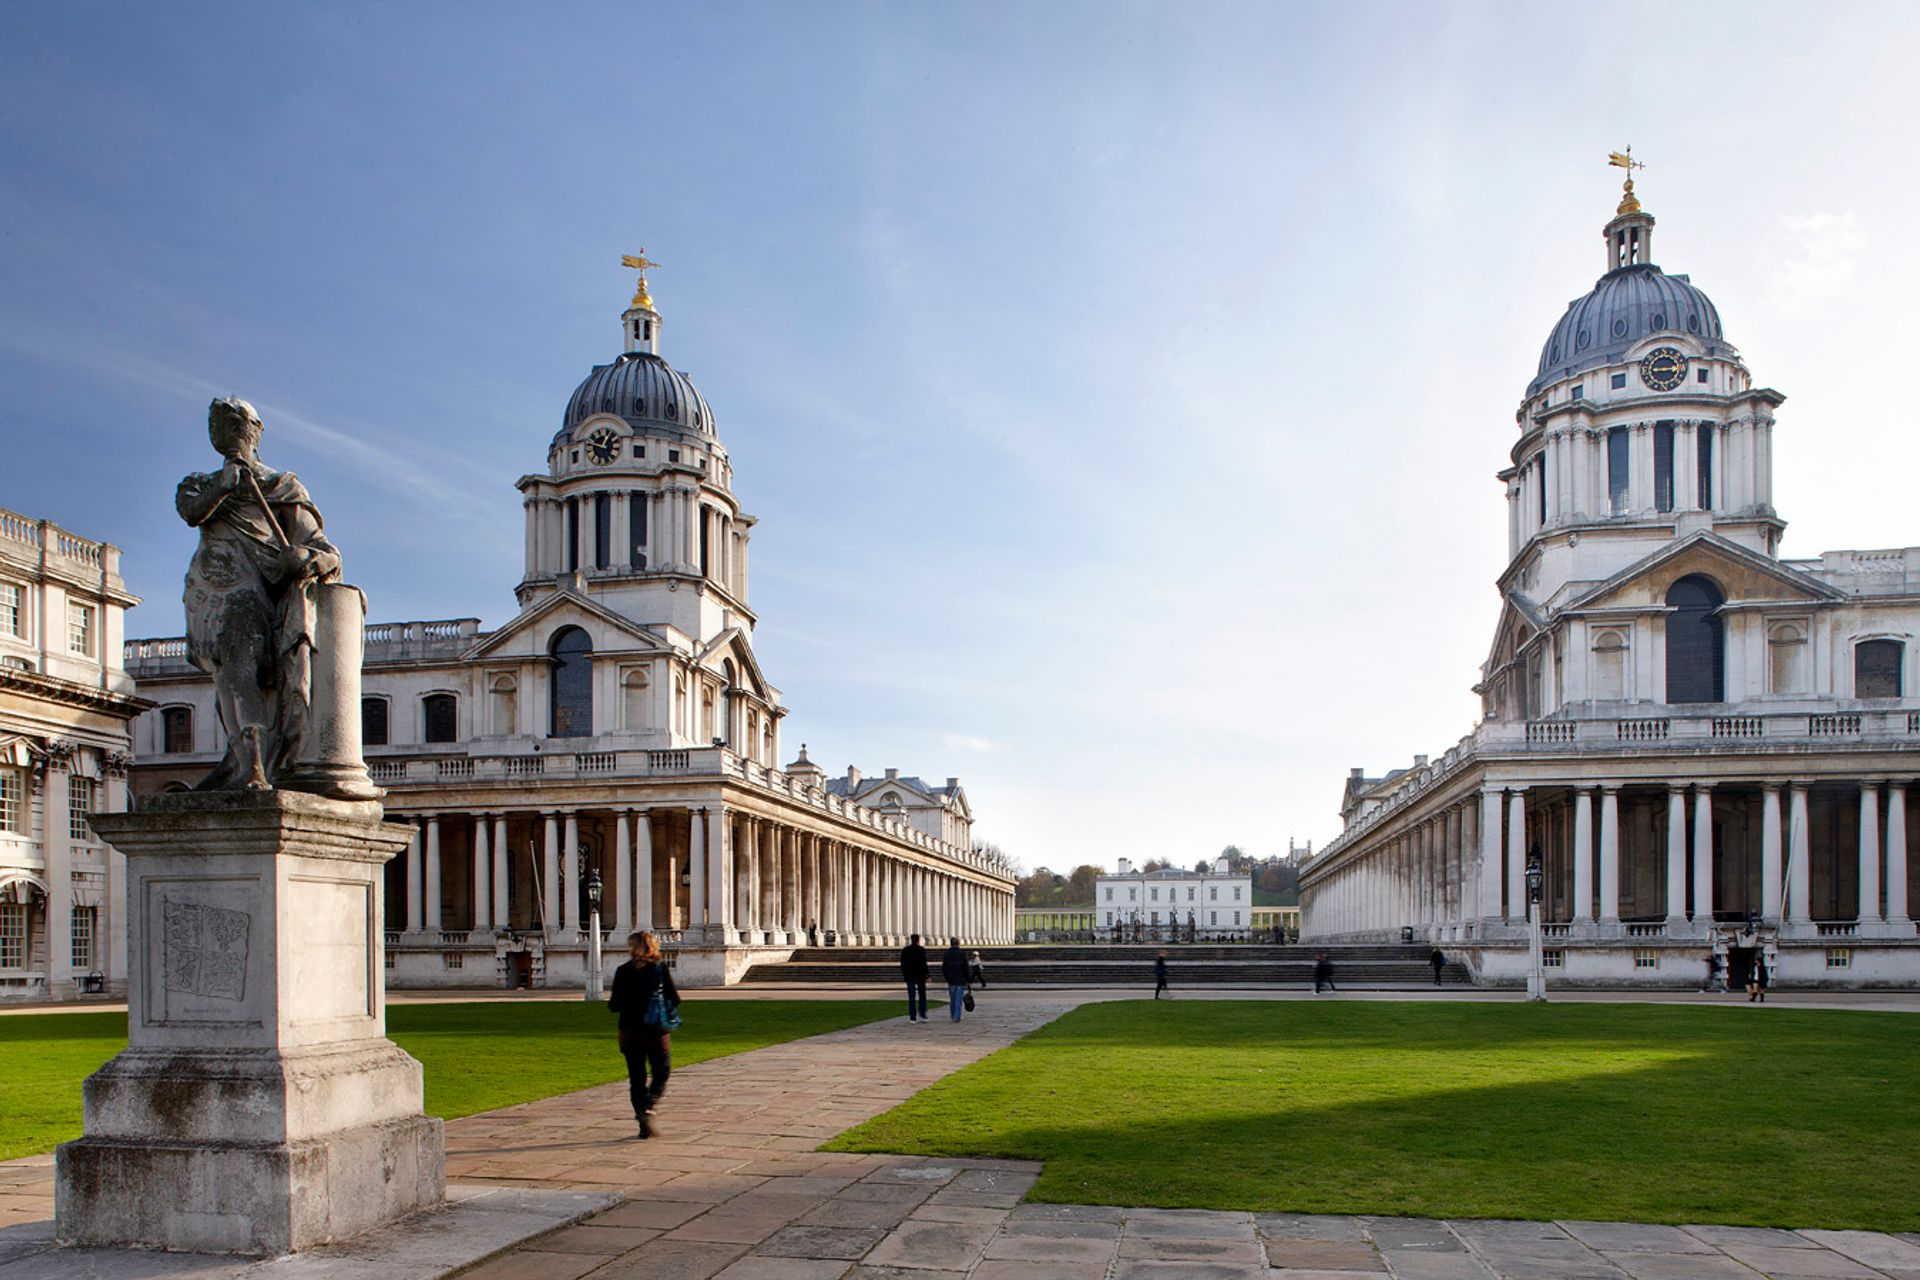 The Old Royal Naval College in Greenwich is one of the biggest beneficiaries of the UK government's heritage rescue funds, receiving a grant of nearly £1m © ORNC and Jigsaw Design & Publishing